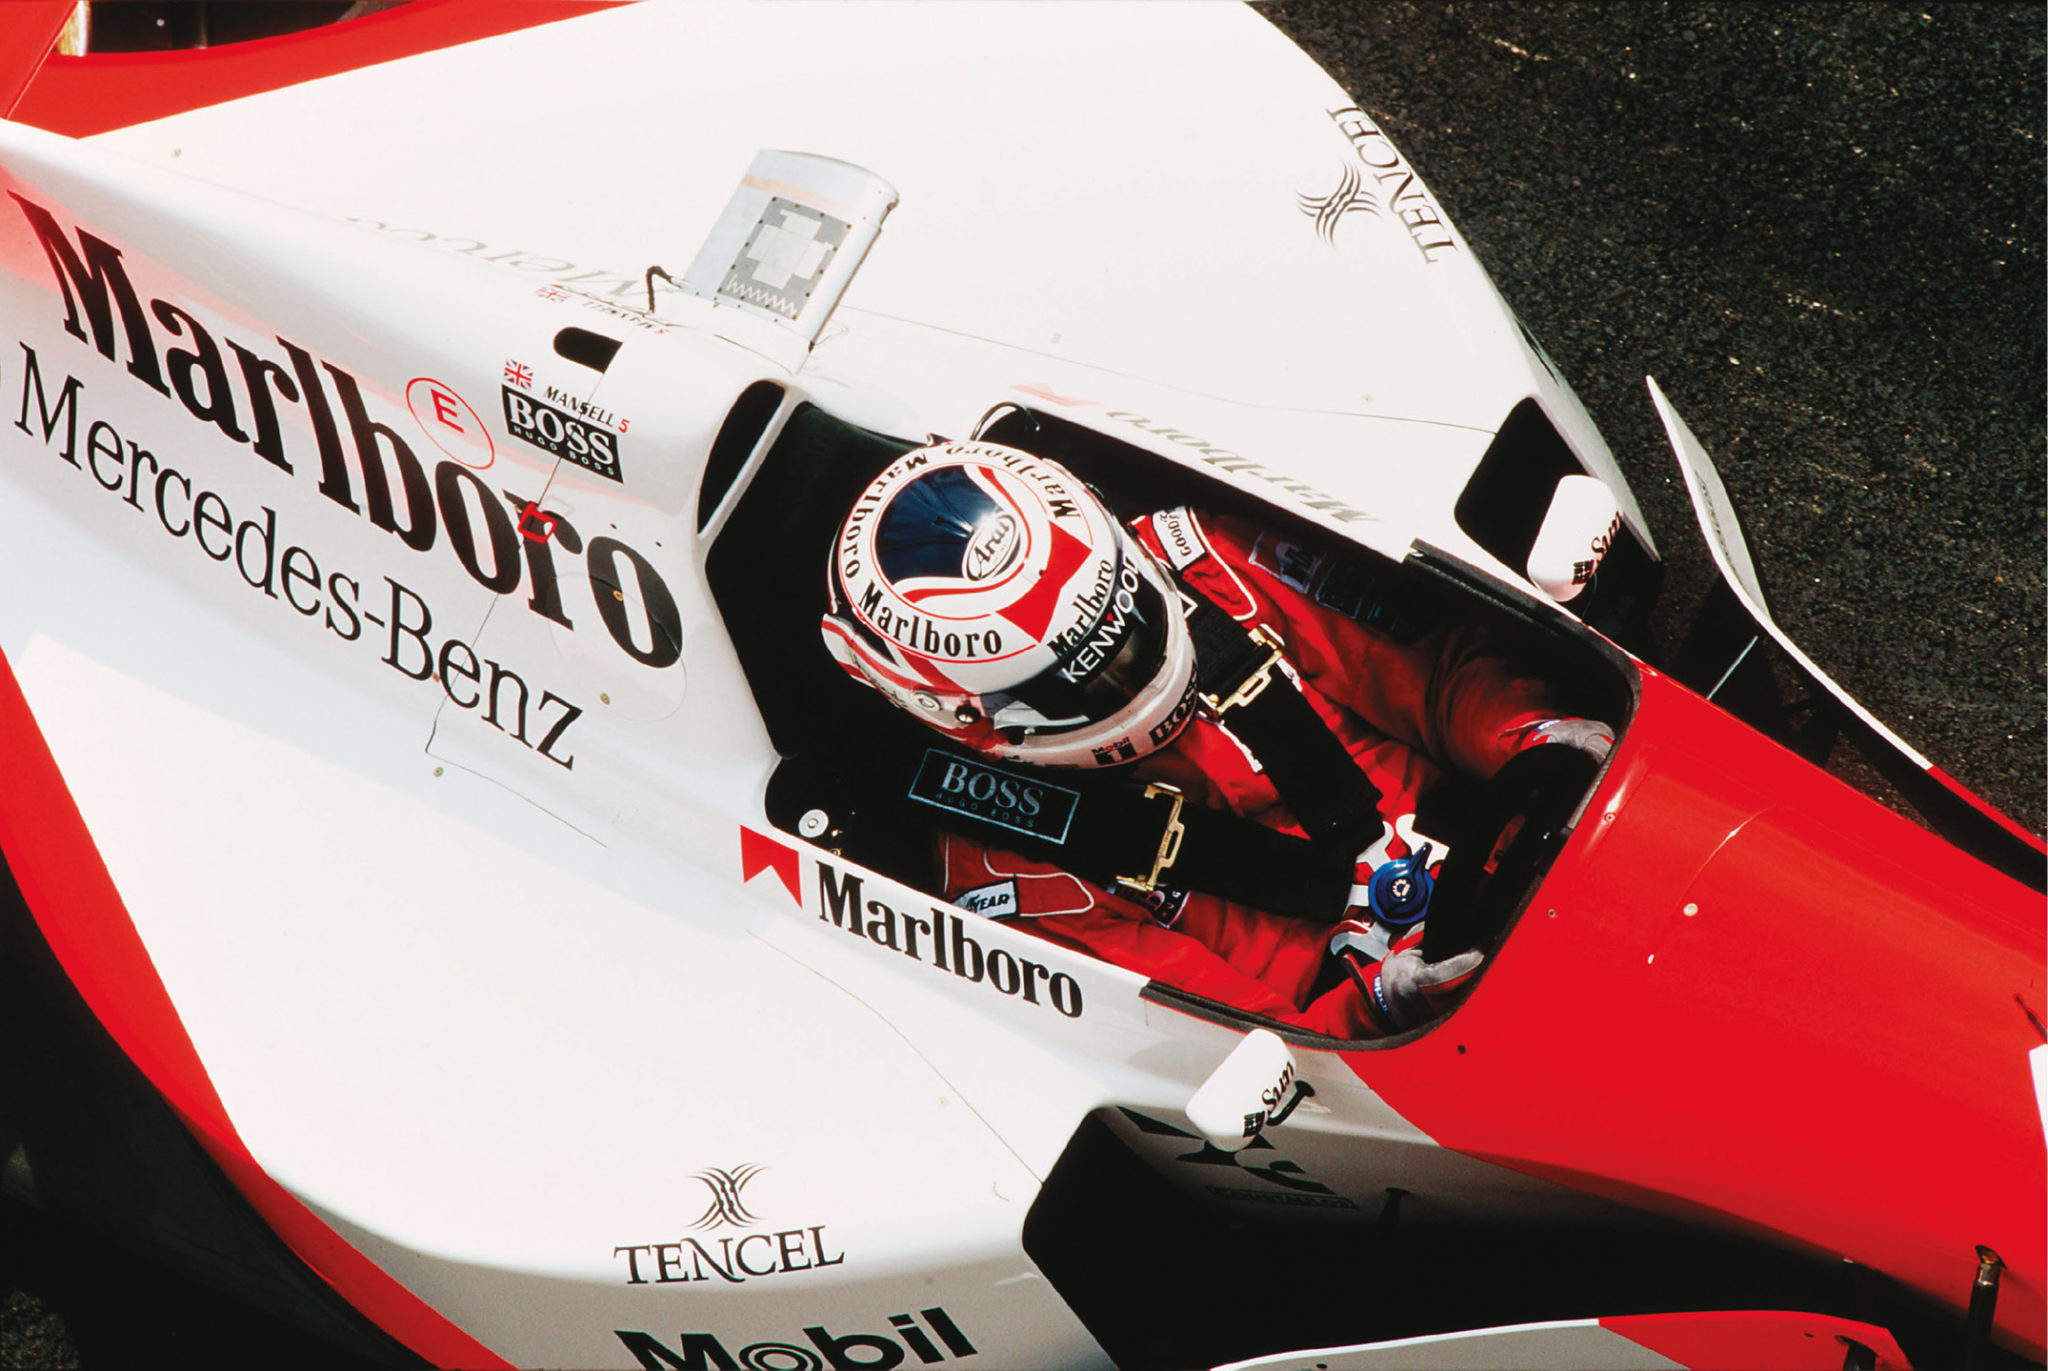 Nigel Mansell was meant to make his glorious comeback with McLaren, but couldn't fit in the car properly.